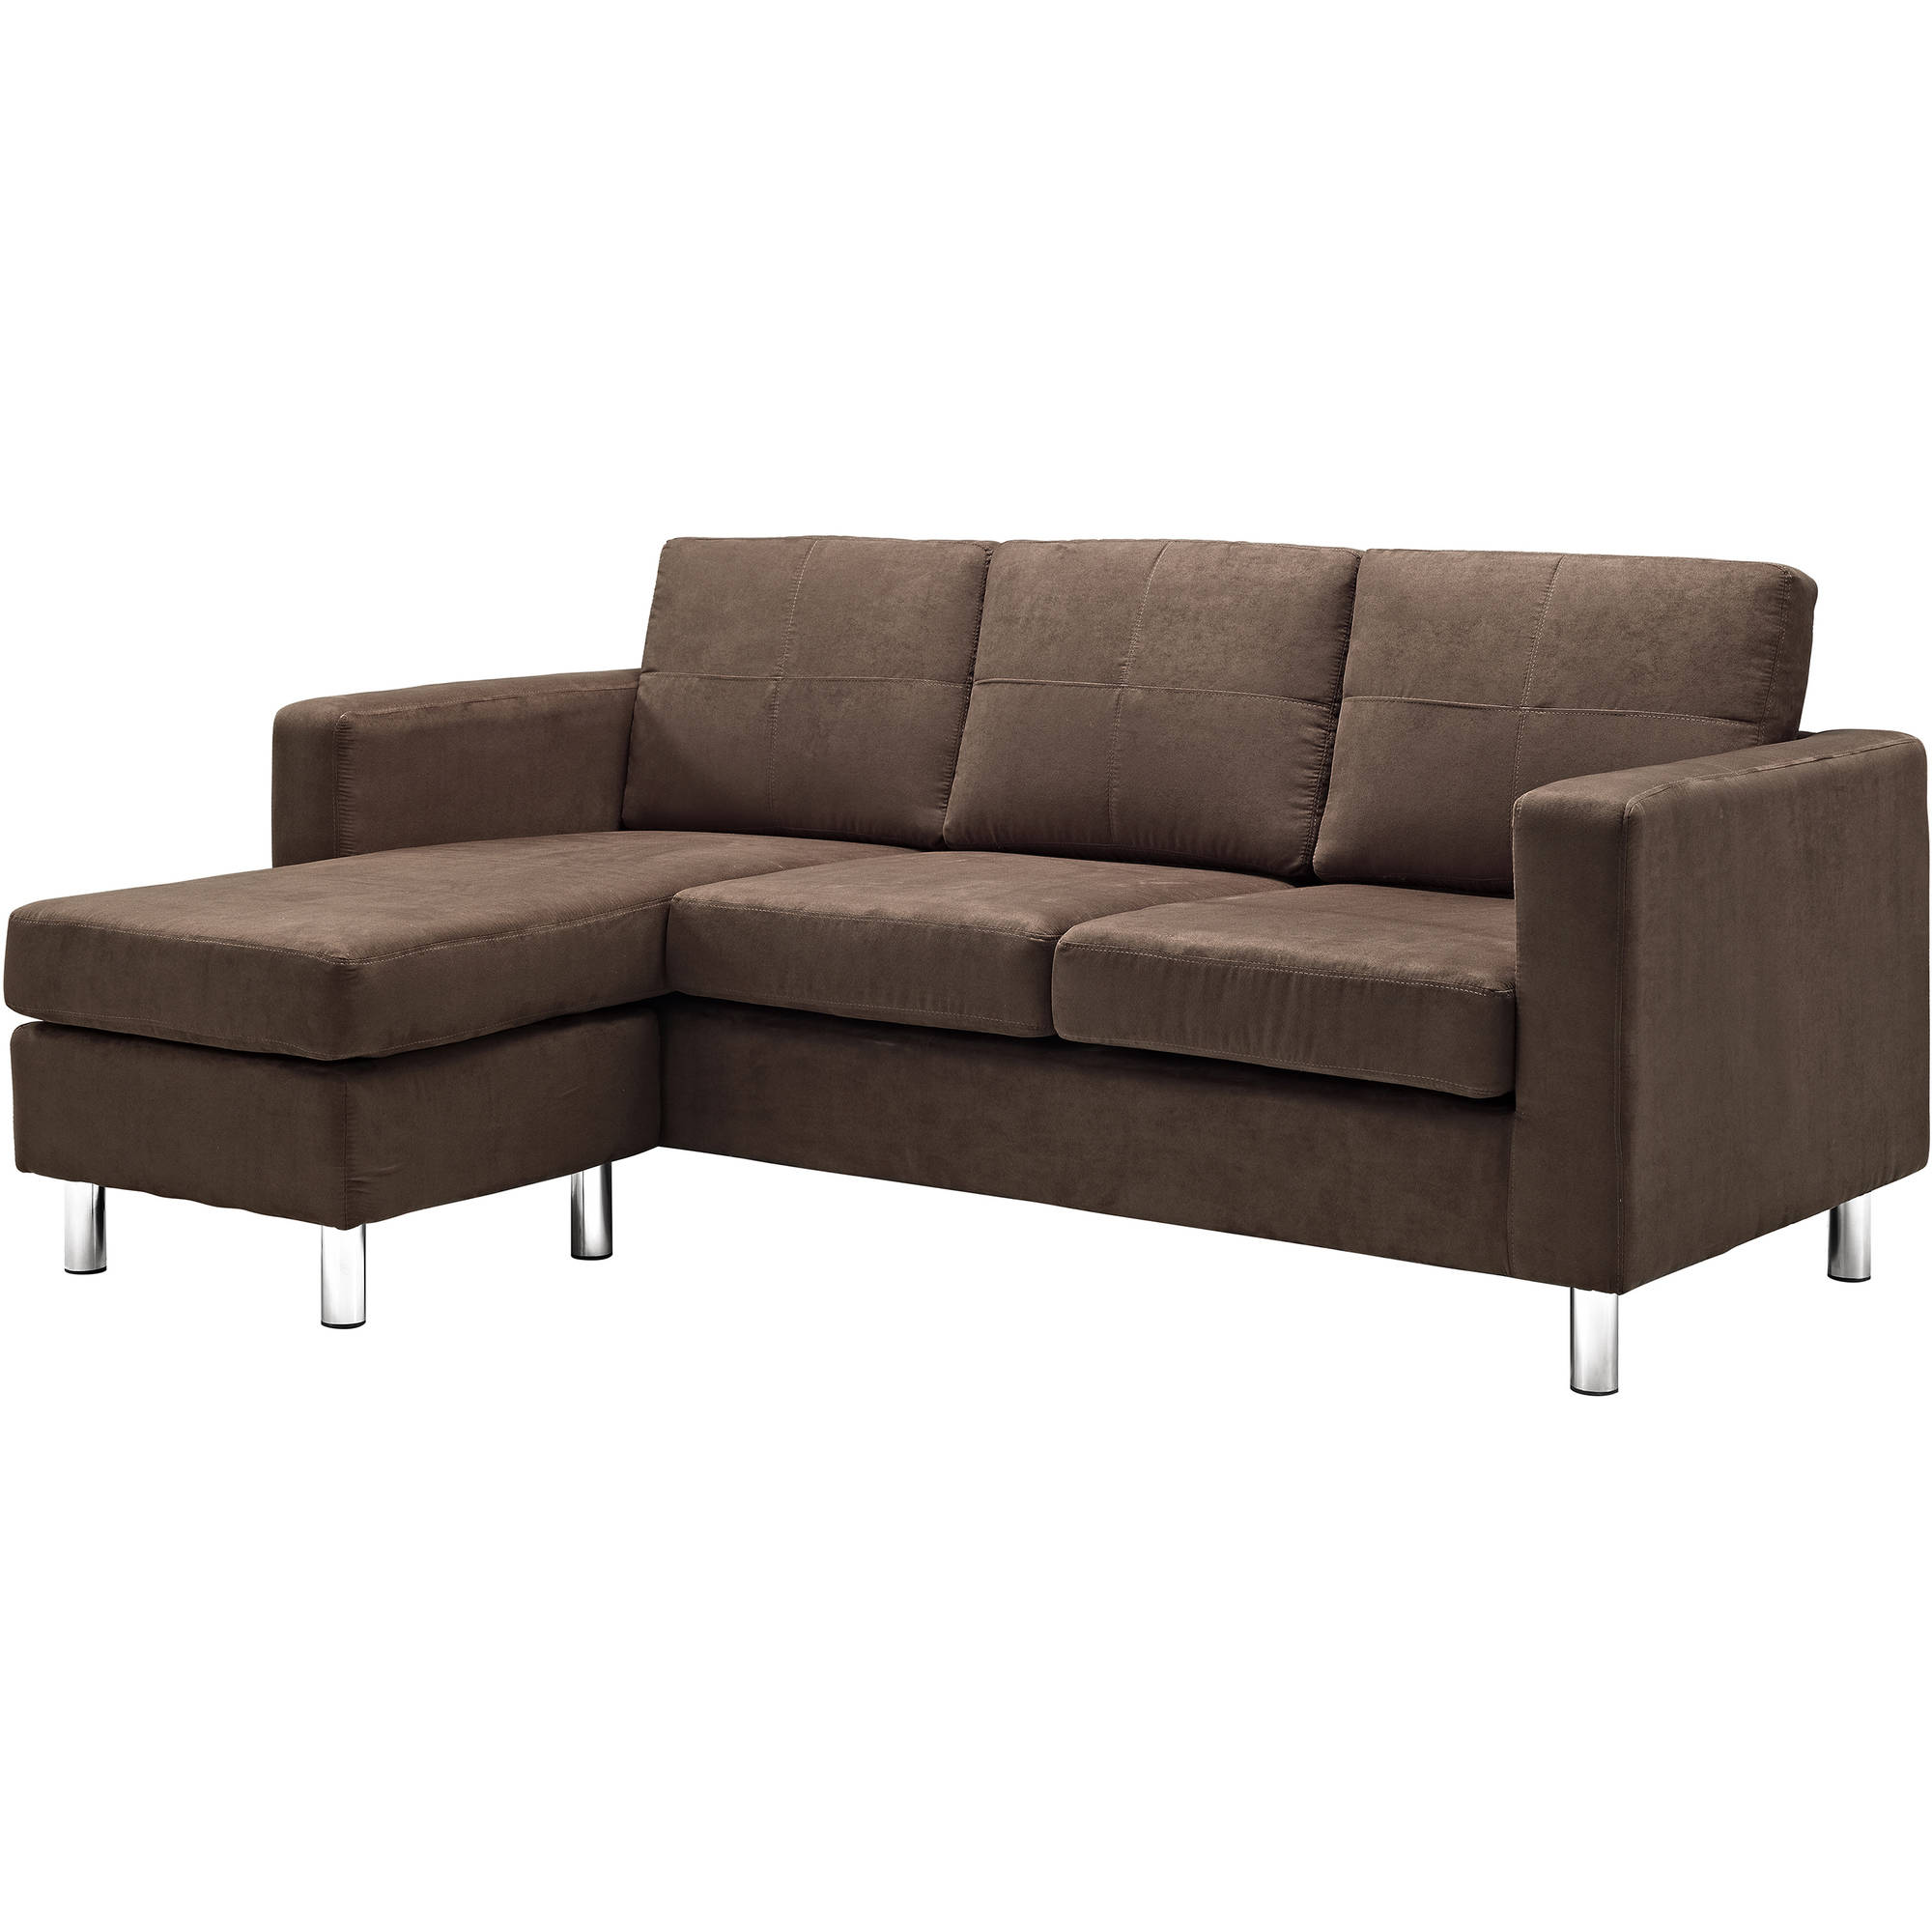 Dorel Living Small Es Configurable Sectional Sofa